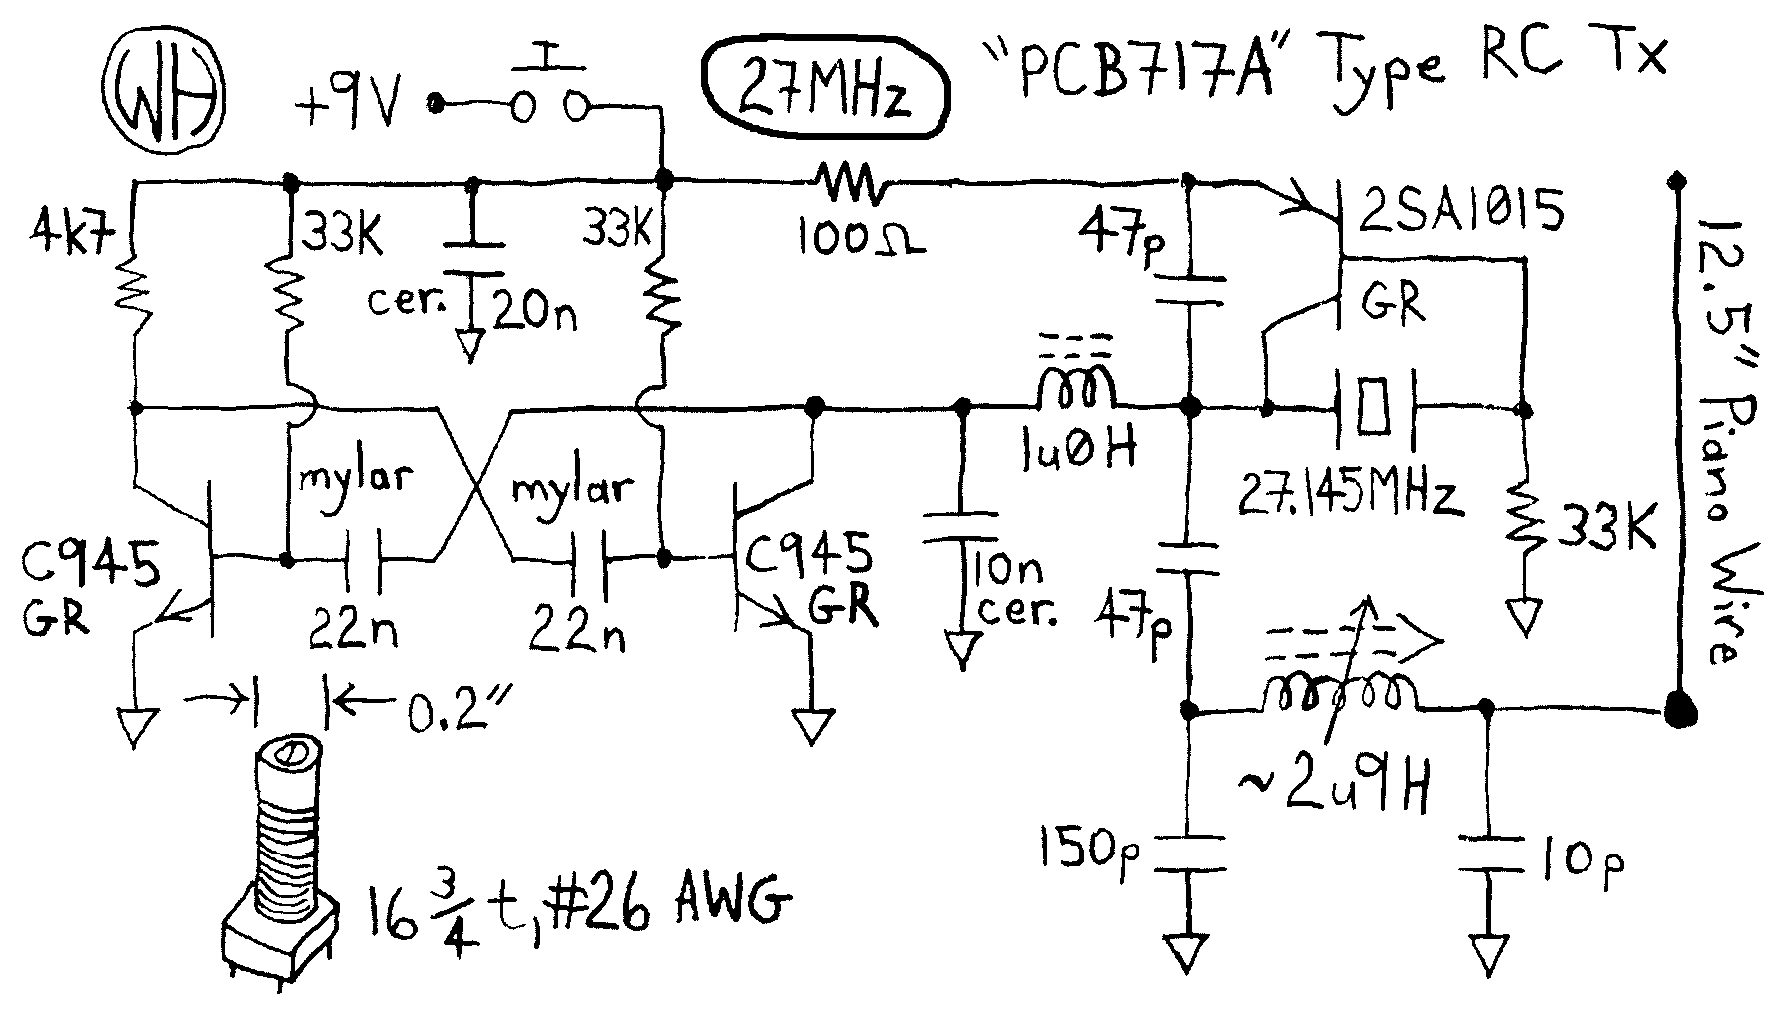 Simple Rc Cars Single Channel Transmitters And Super Regenerative Car Wiring Schematic Circuit